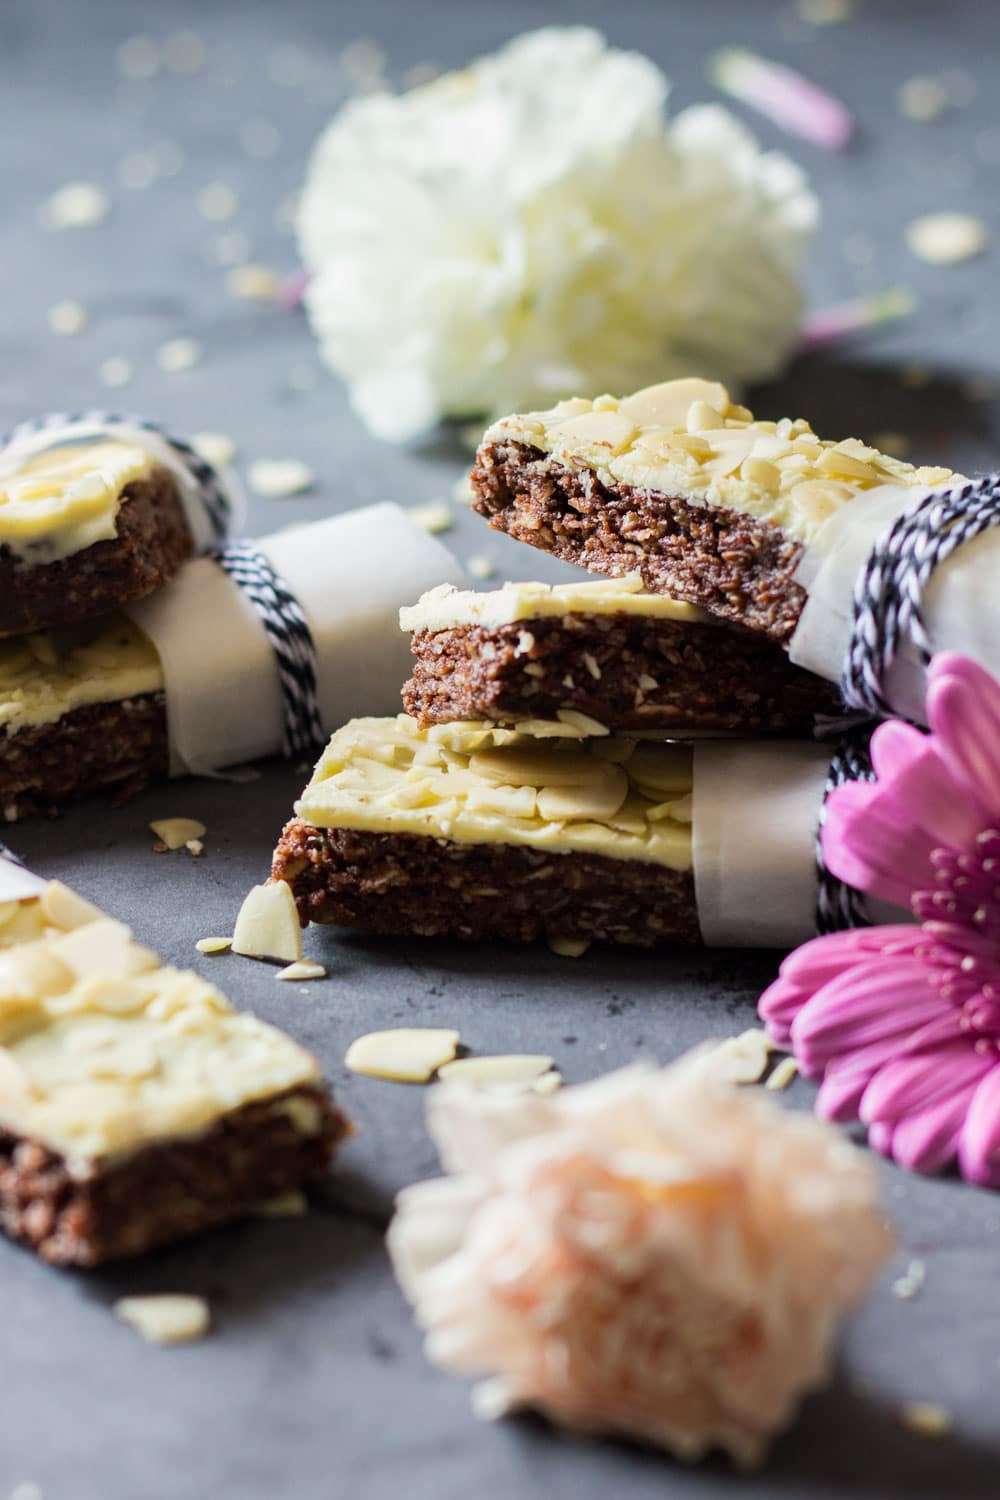 These Almond Granola Bars are protein-rich and iron-rich easy no-bake granola bars sweetened with maple syrup and a tiny bit of white chocolate.